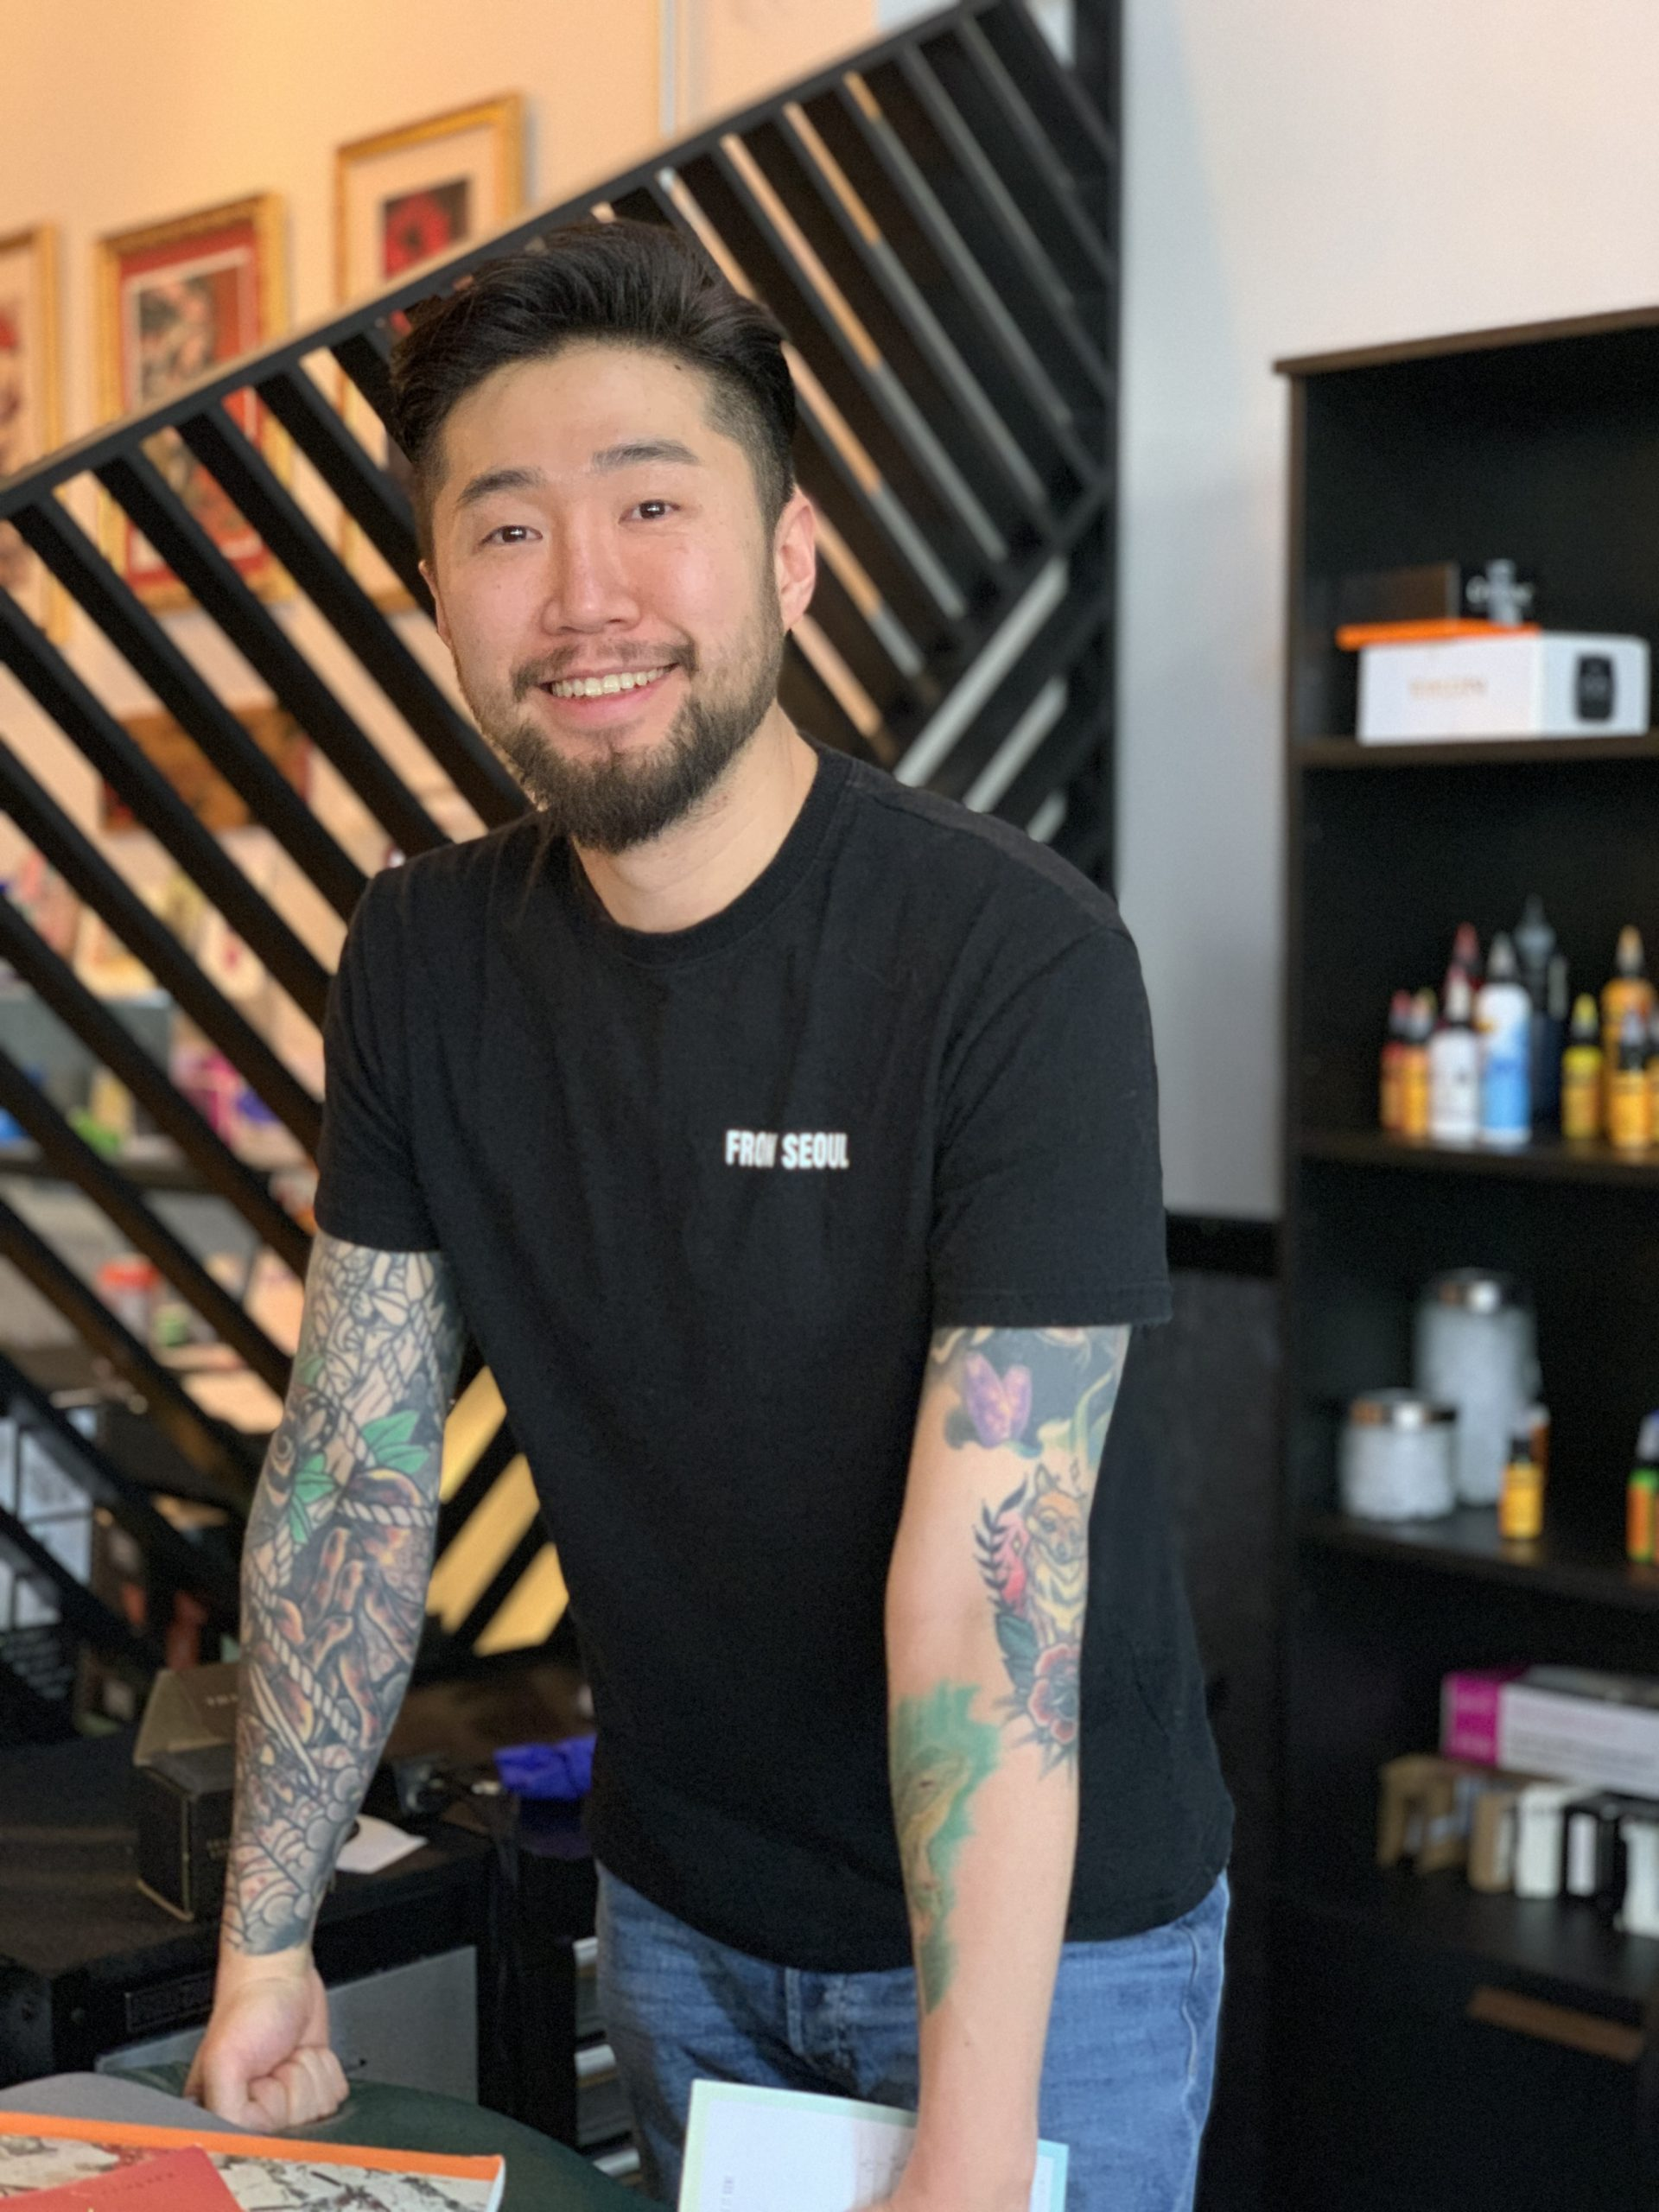 Zen (Gyungwook Kim). - Chicago tattoo artist, best tattoo artist chicago, chicago tattoo, tattoo near me. Japanese Tattoo